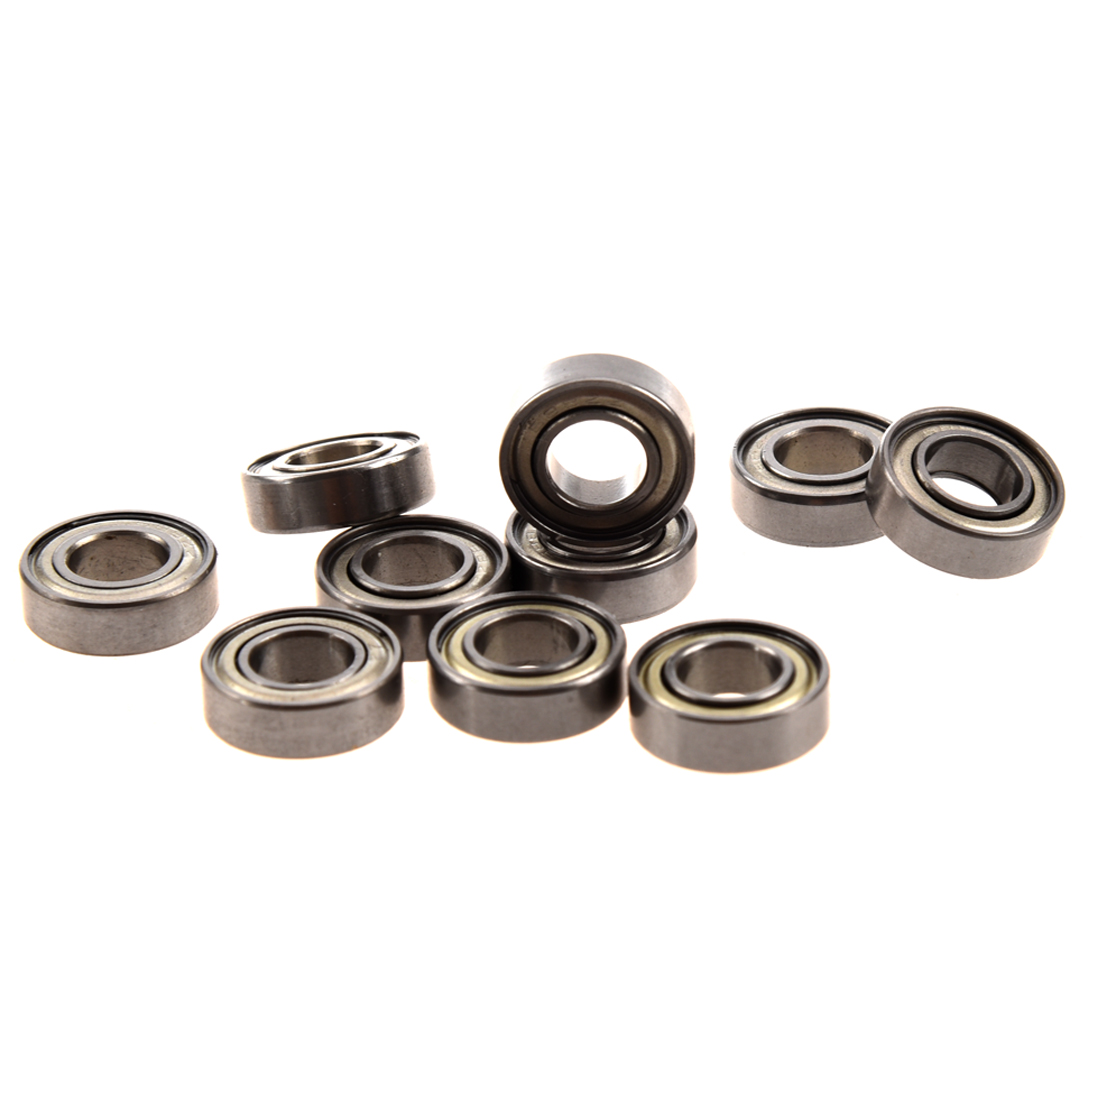 10 Pcs 698Z 8 x 19 x6mm Single Row Sealed Deep Groove Ball Bearings 6007rs 35mm x 62mm x 14mm deep groove single row sealed rolling bearing